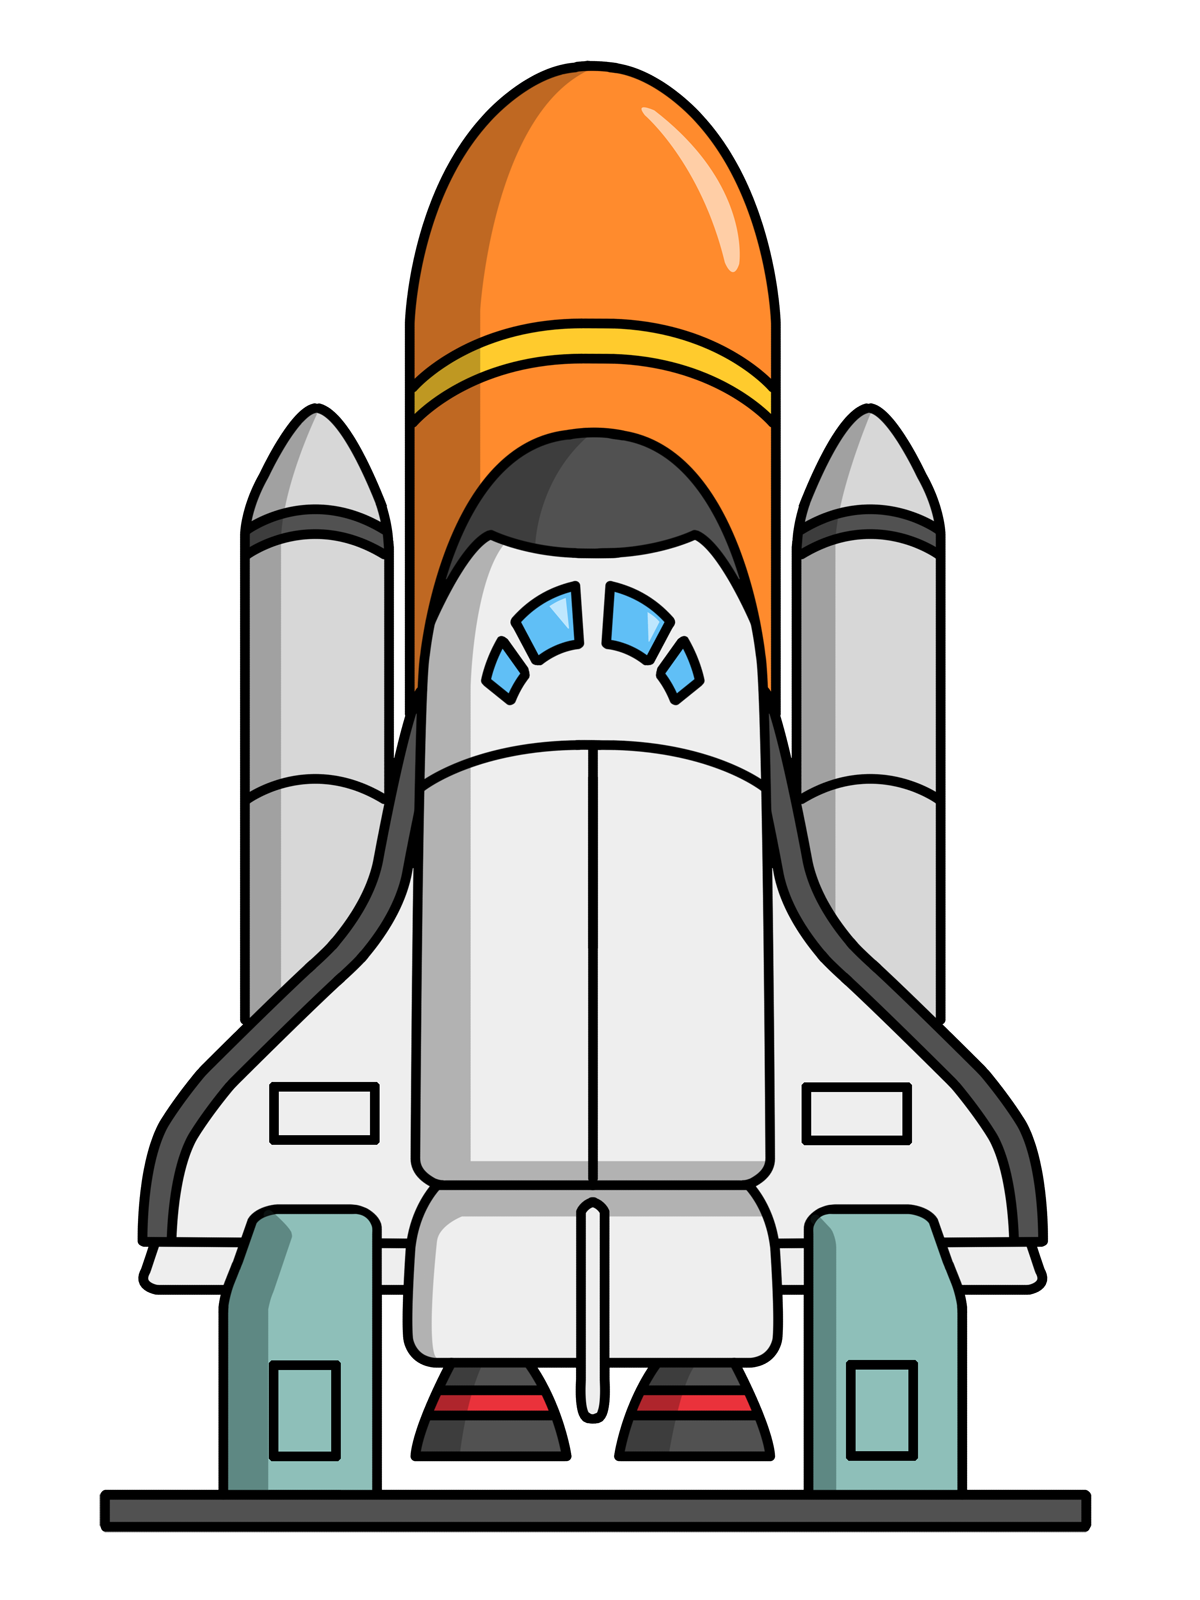 Free domain clip art. Clipart rocket space transportation